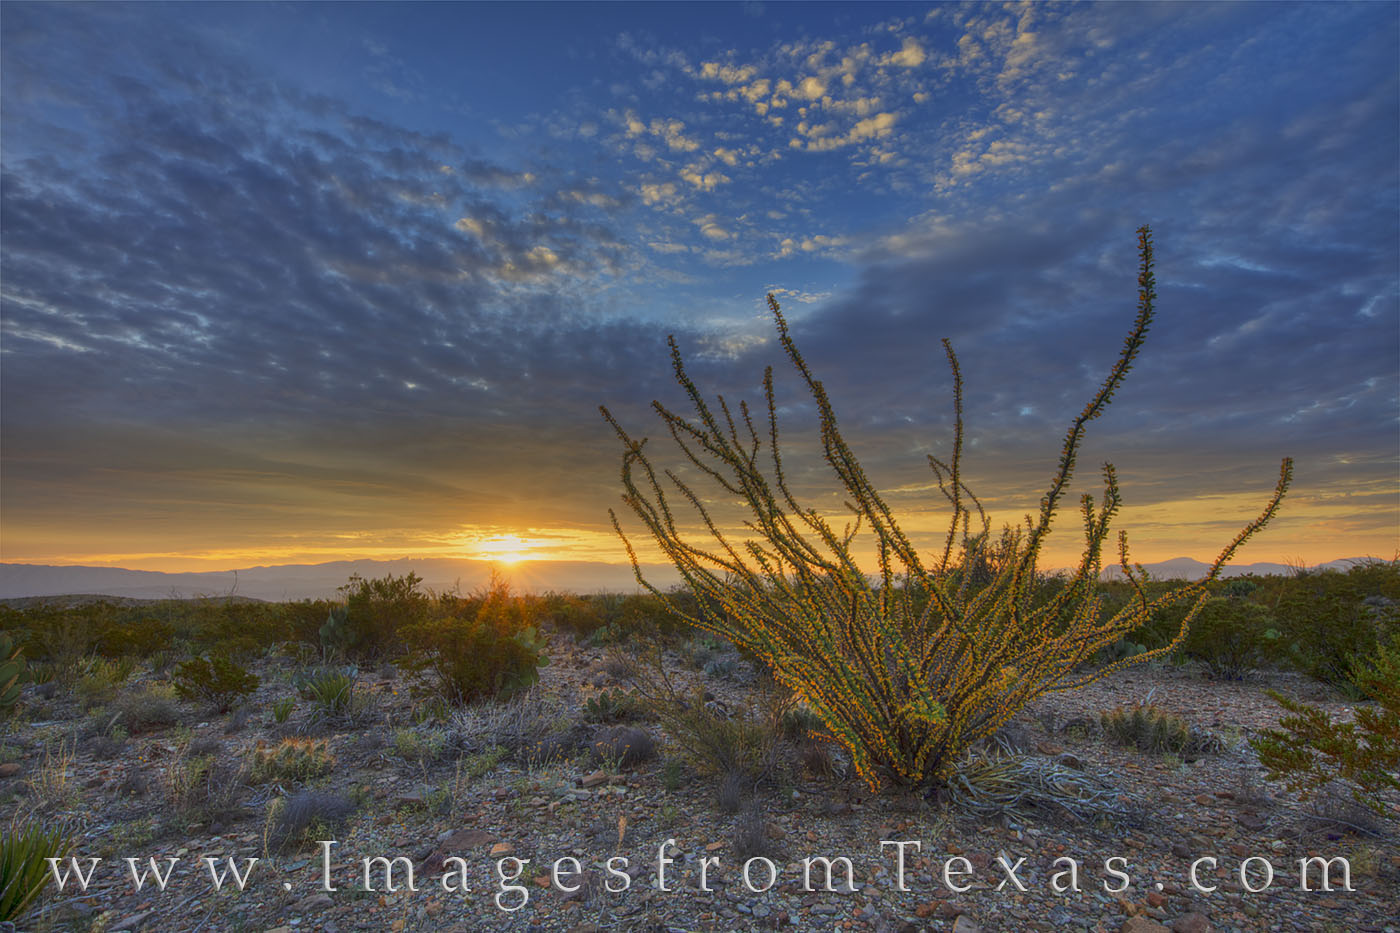 big bend national park, sunset, texas sunset, ocotillo, texas landscapes, chihuahuan desert, chisos mountains, photo